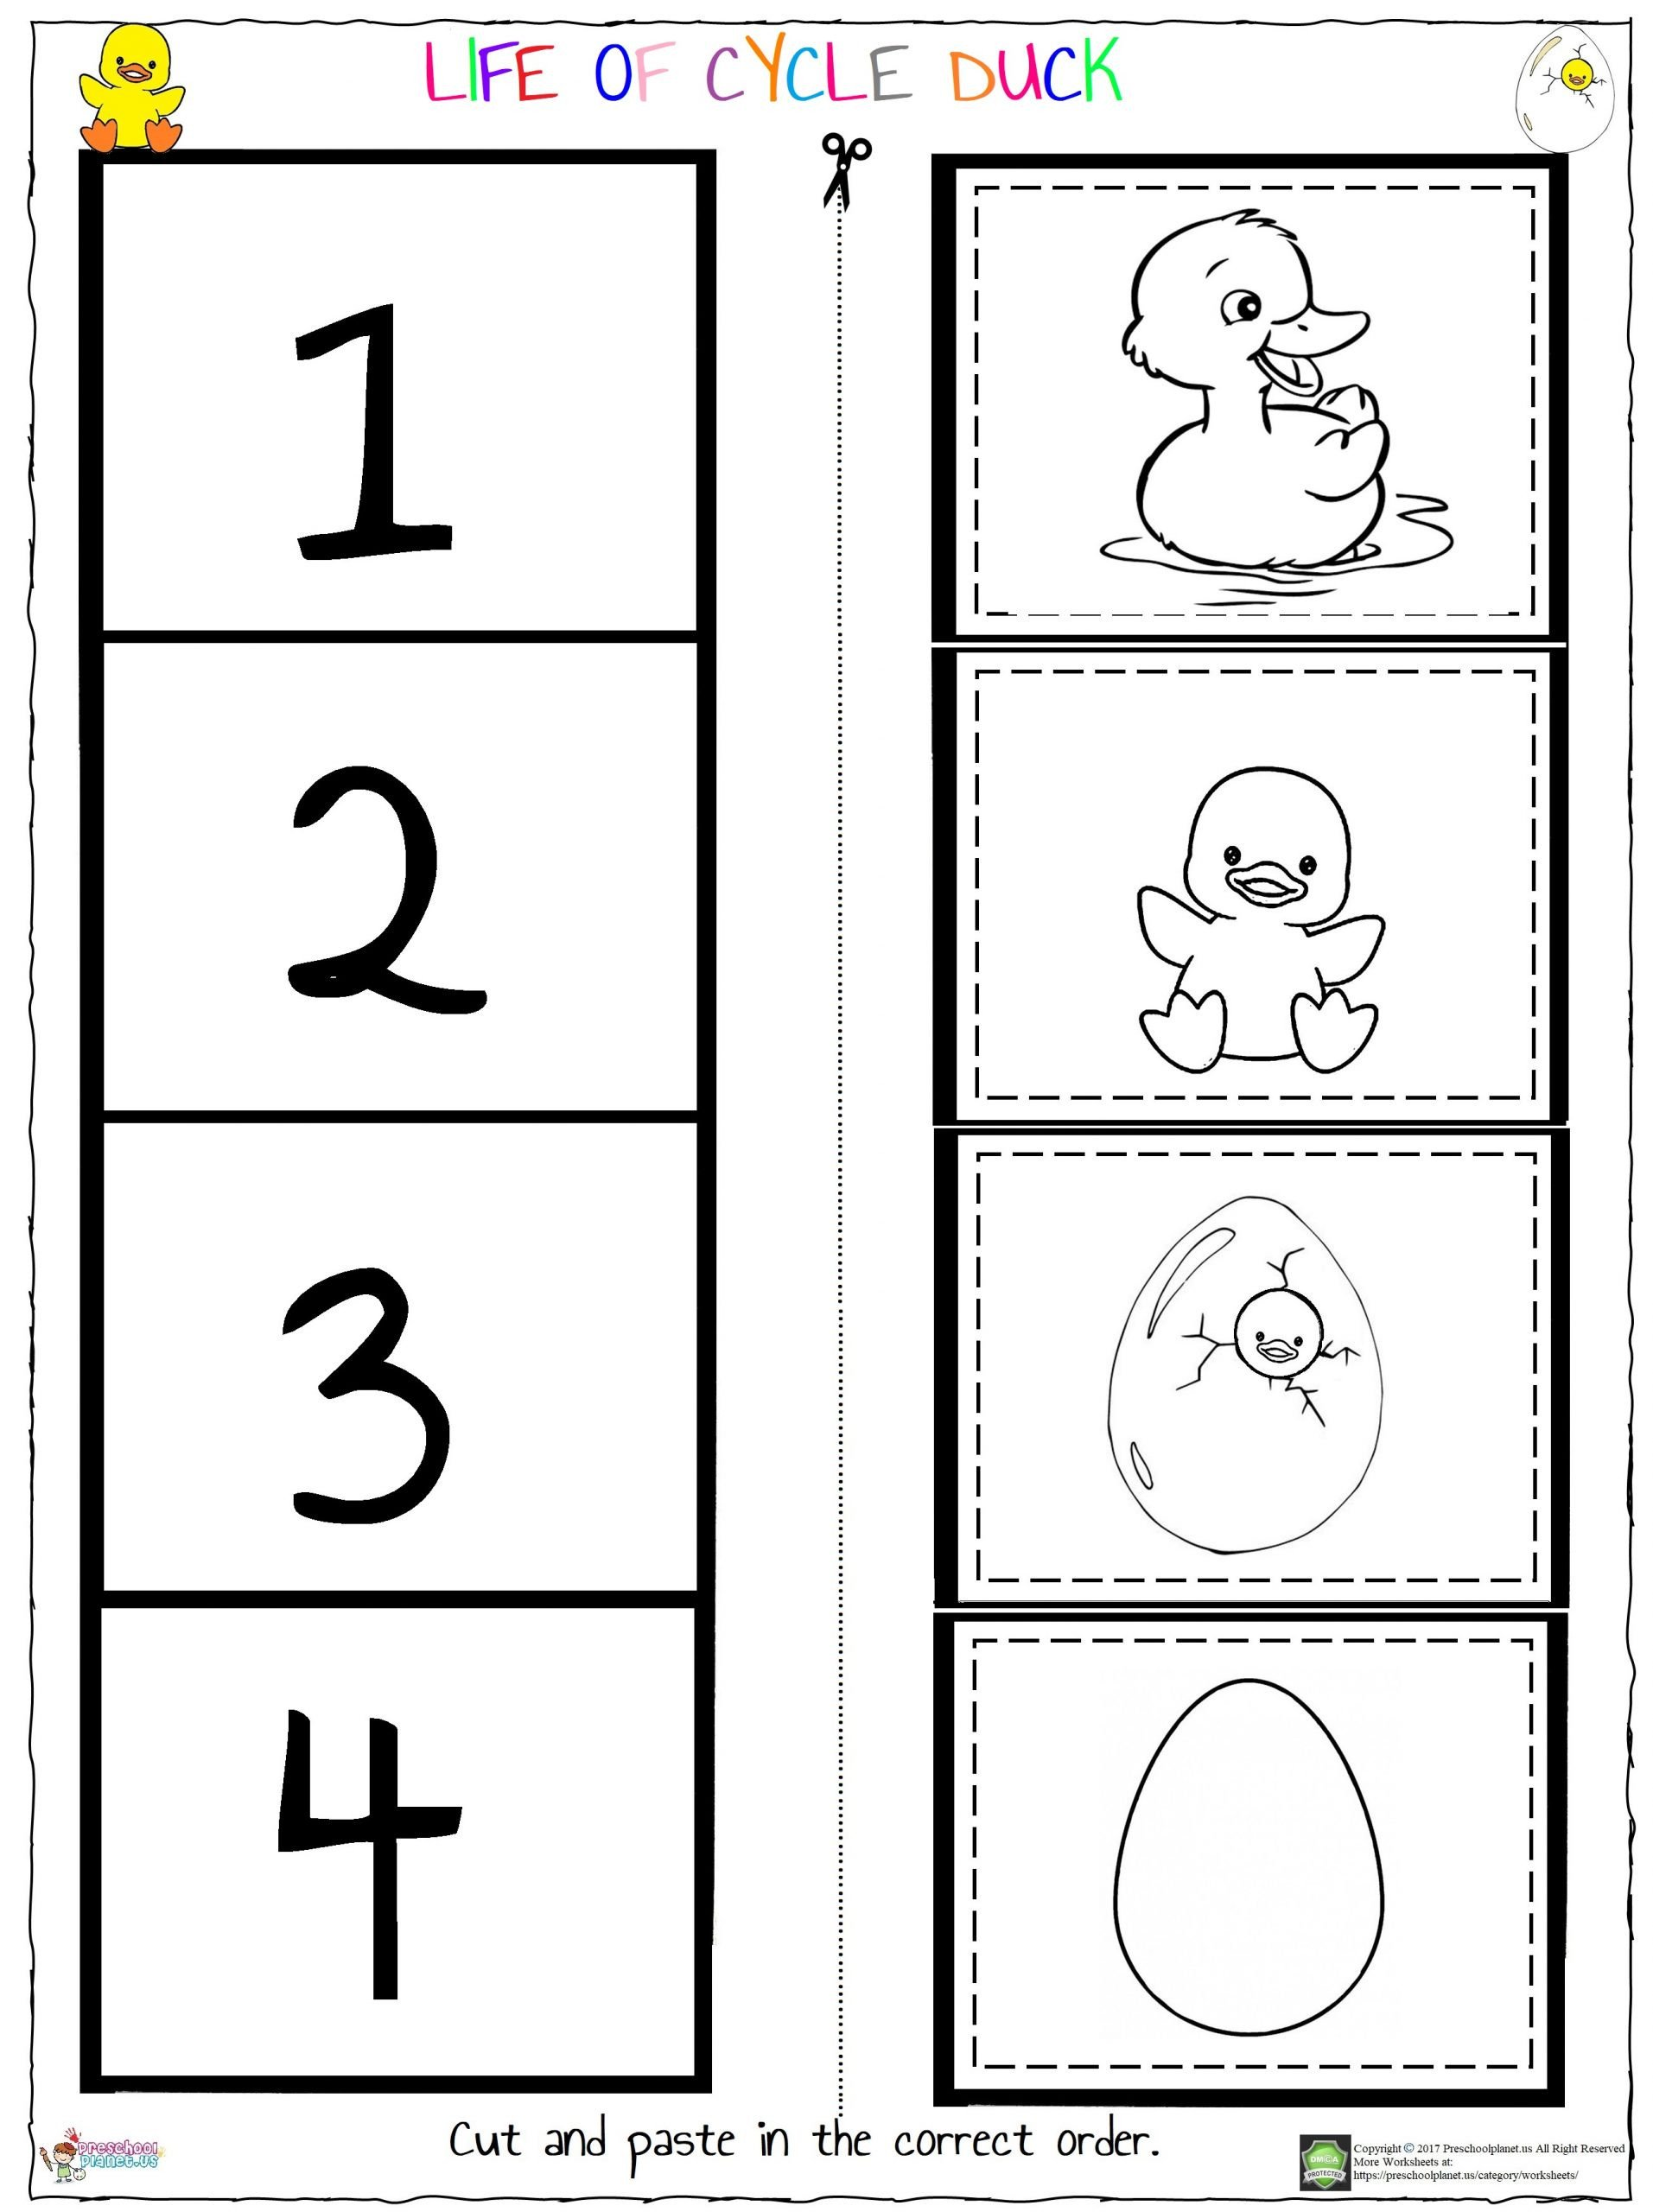 Life of Cycle Duck Worksheet scaled